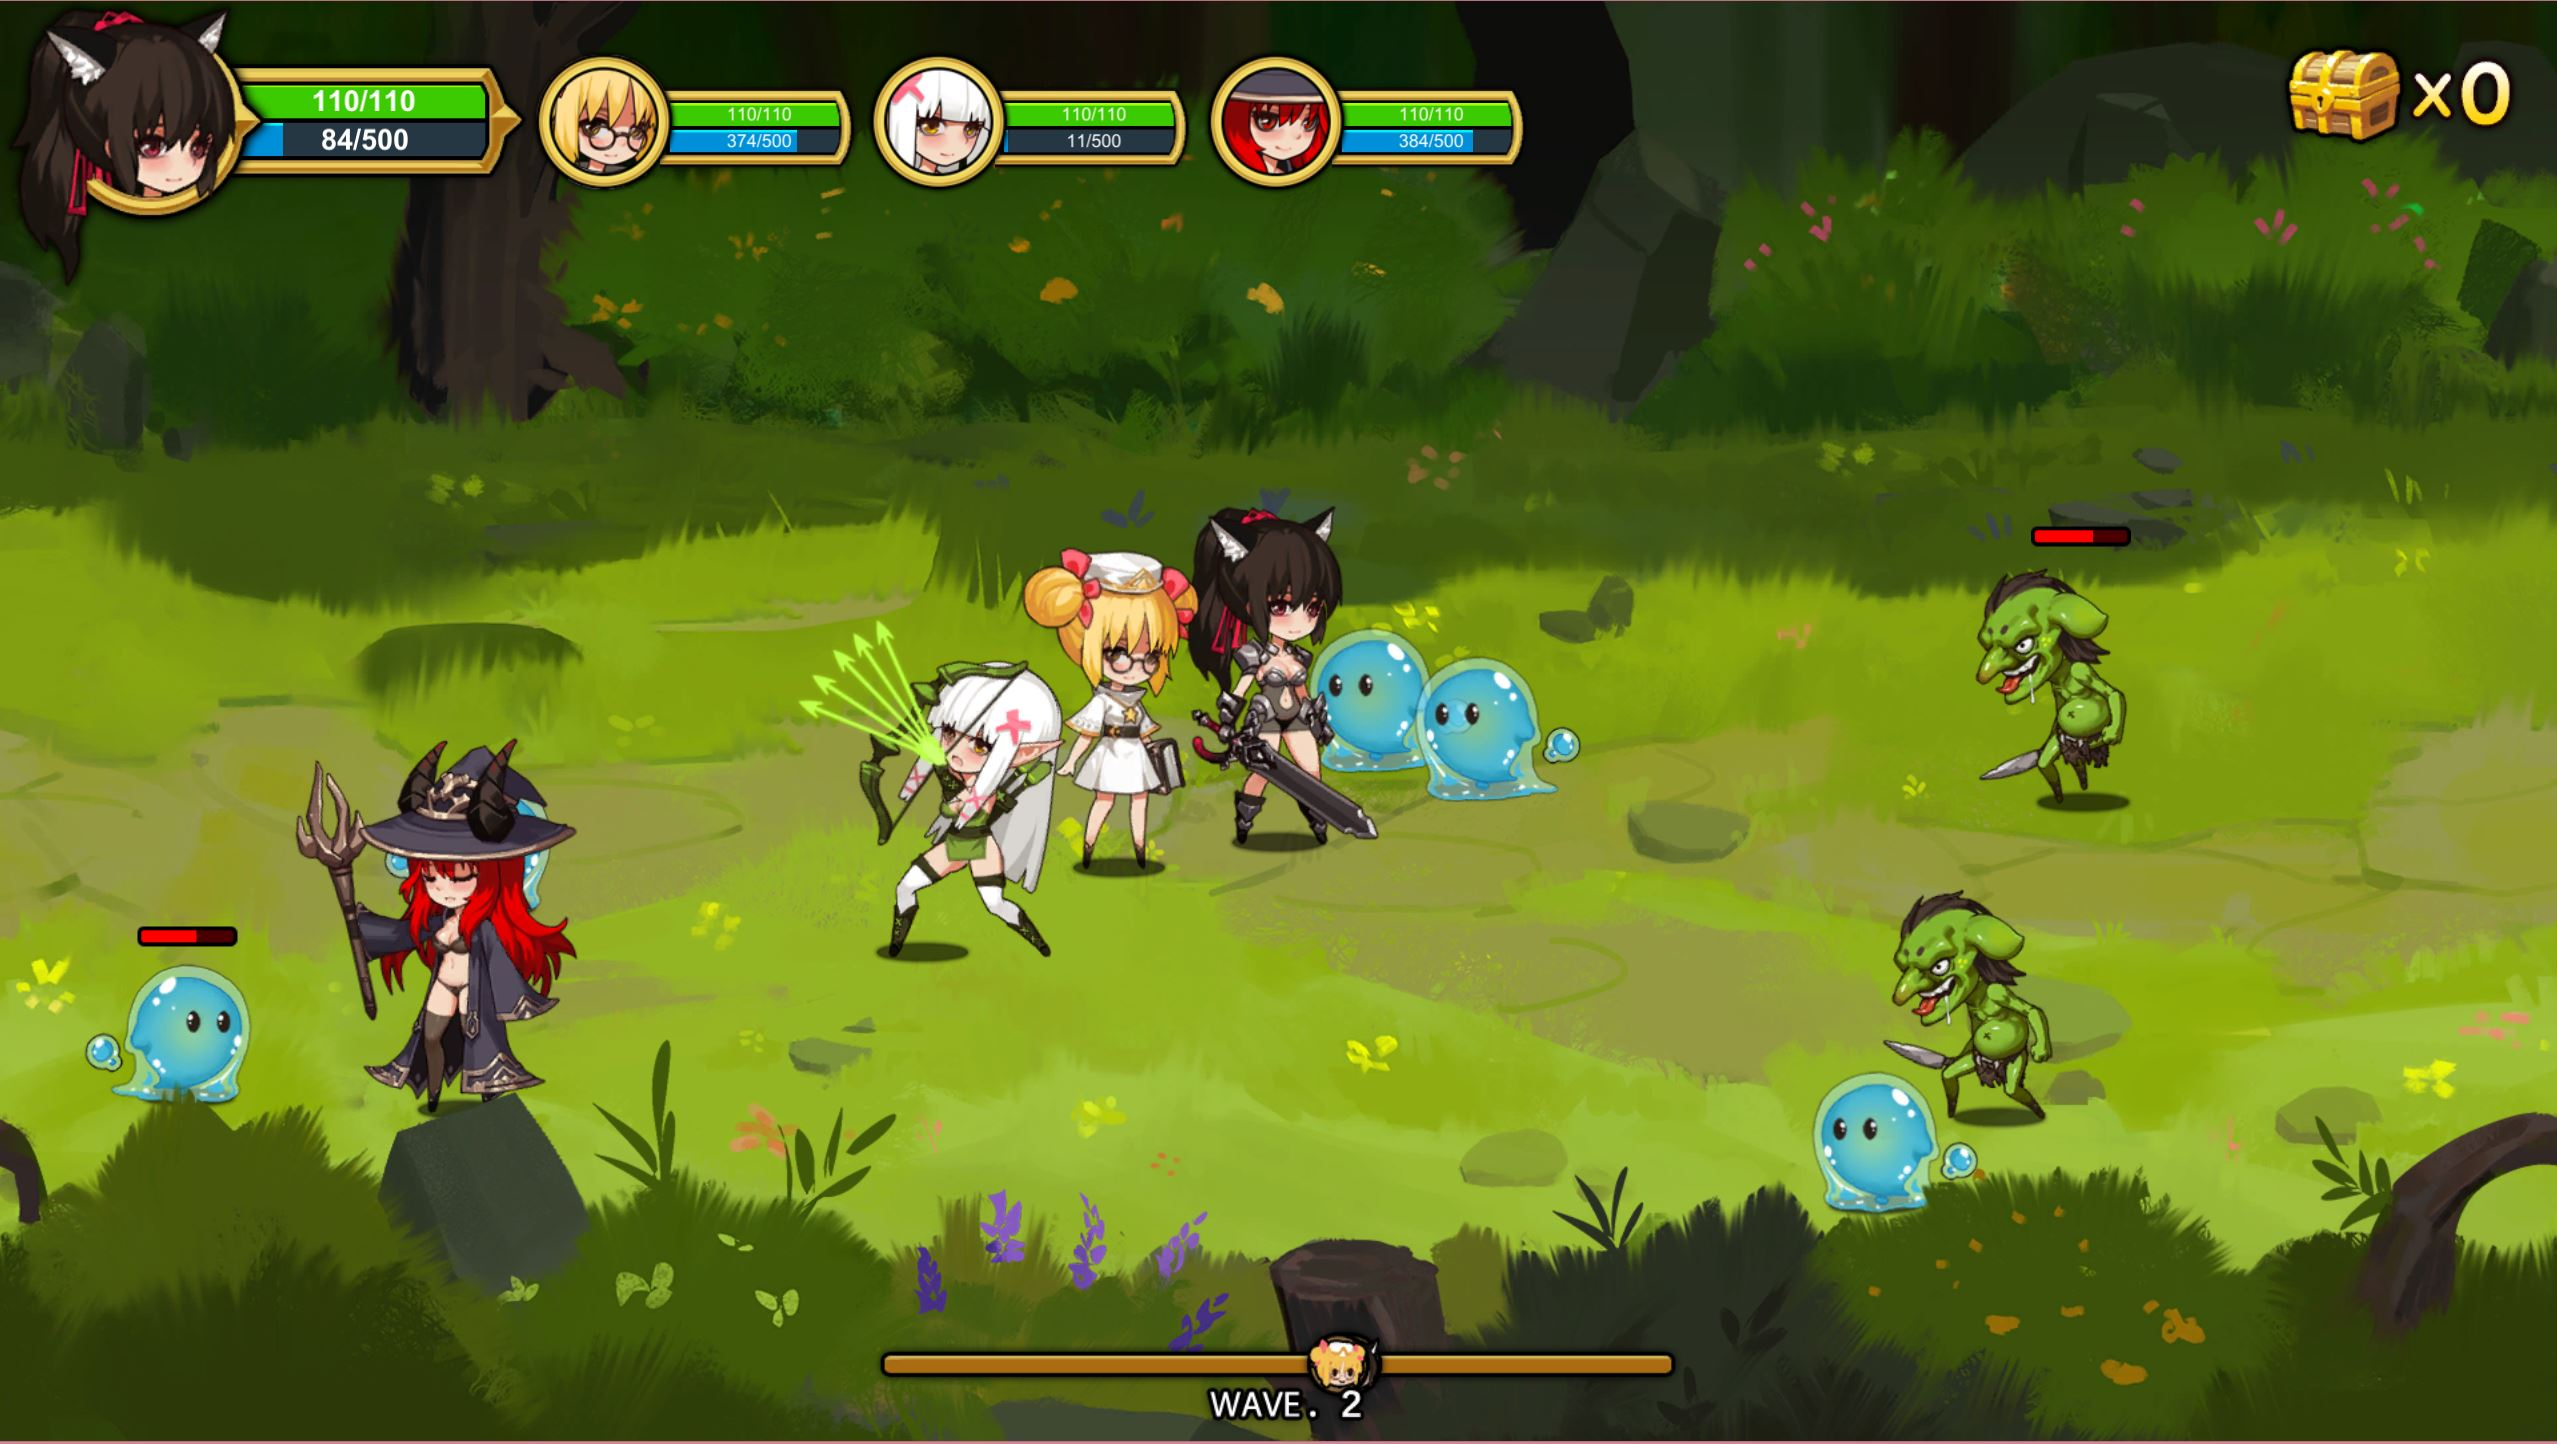 Treasure Chest Corps - Fight Demons to Restore the Barrier screenshot 2